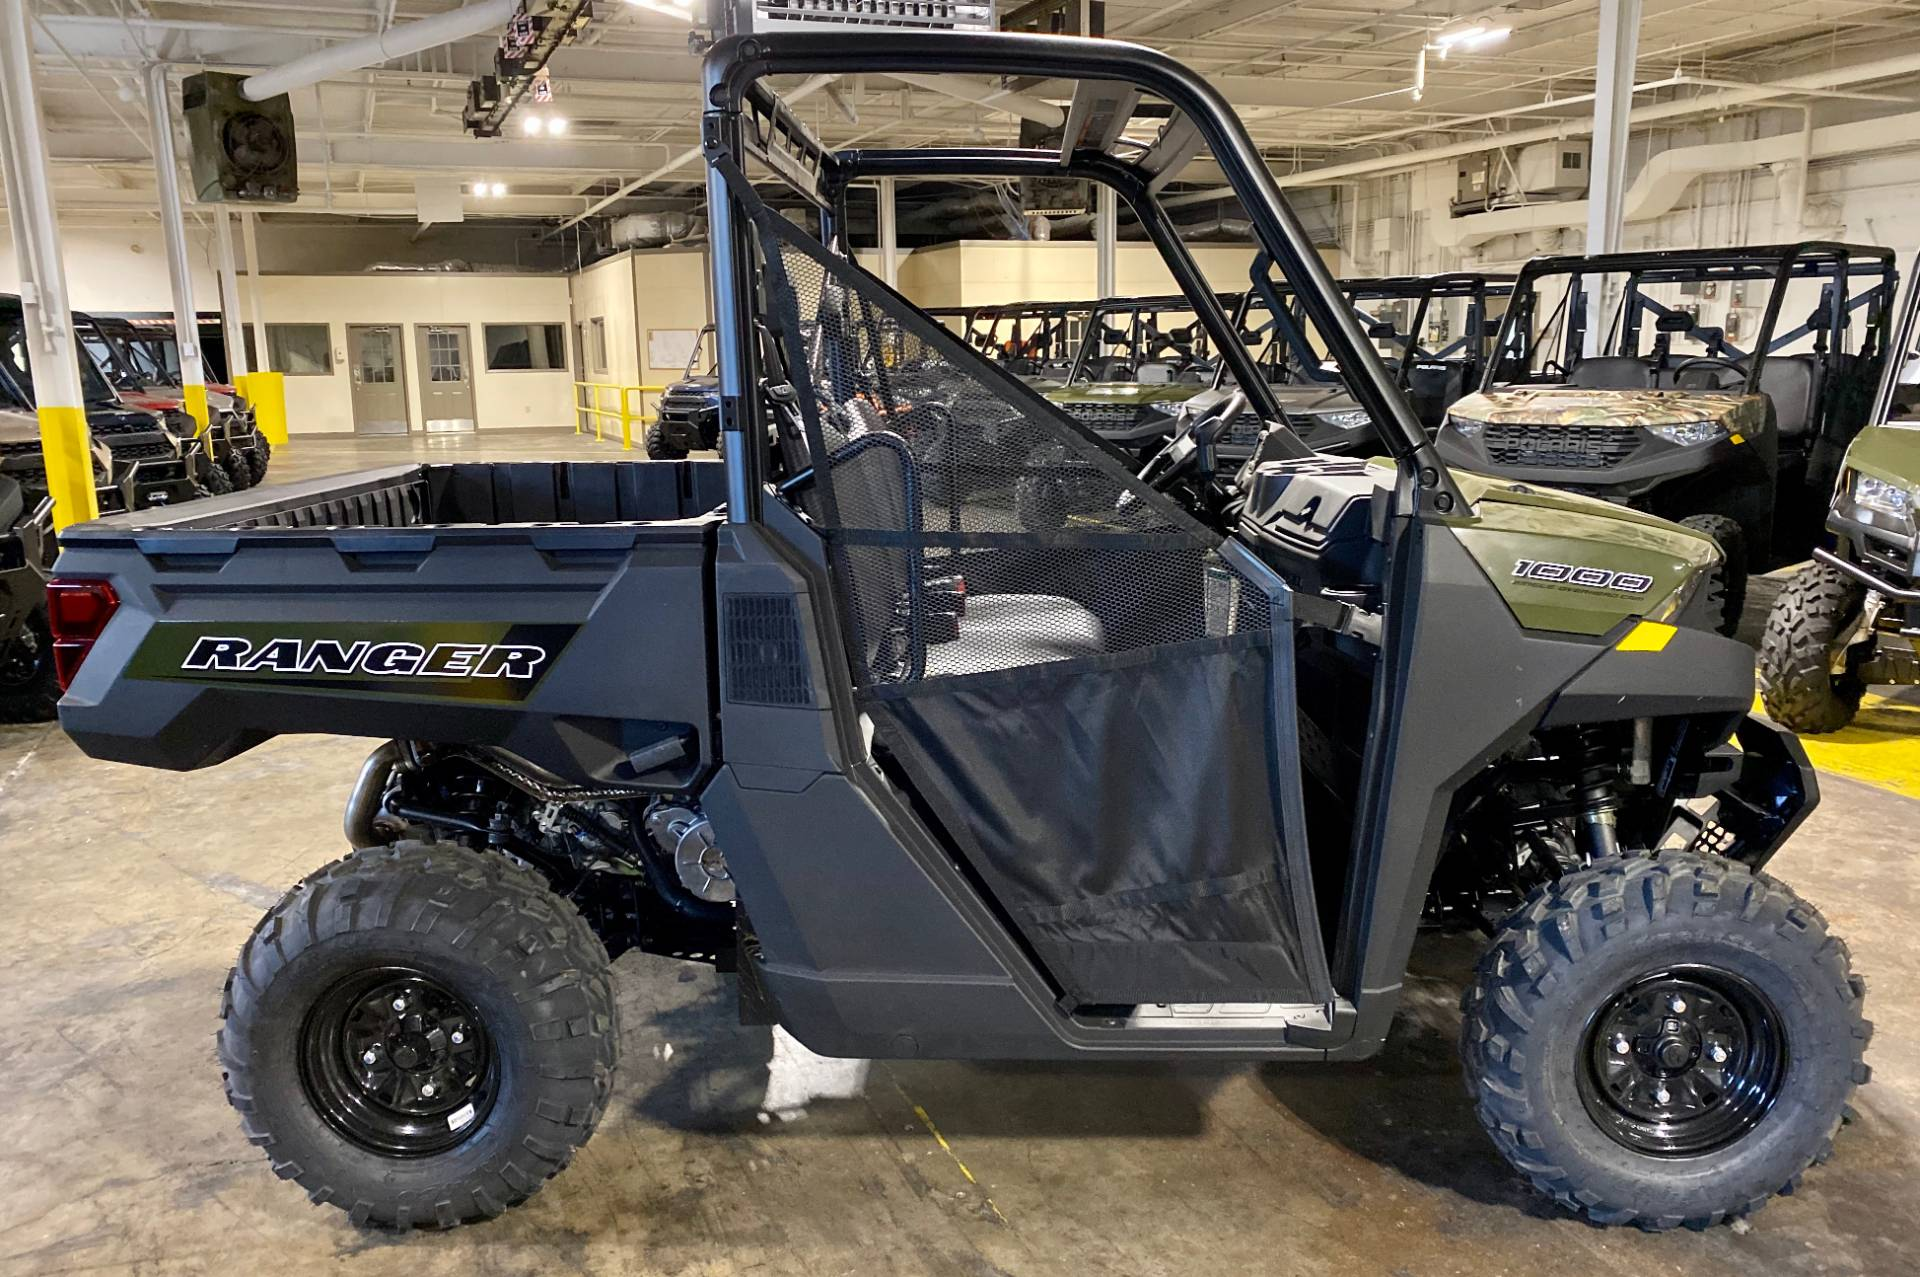 2020 Polaris Ranger 1000 EPS in Statesville, North Carolina - Photo 3